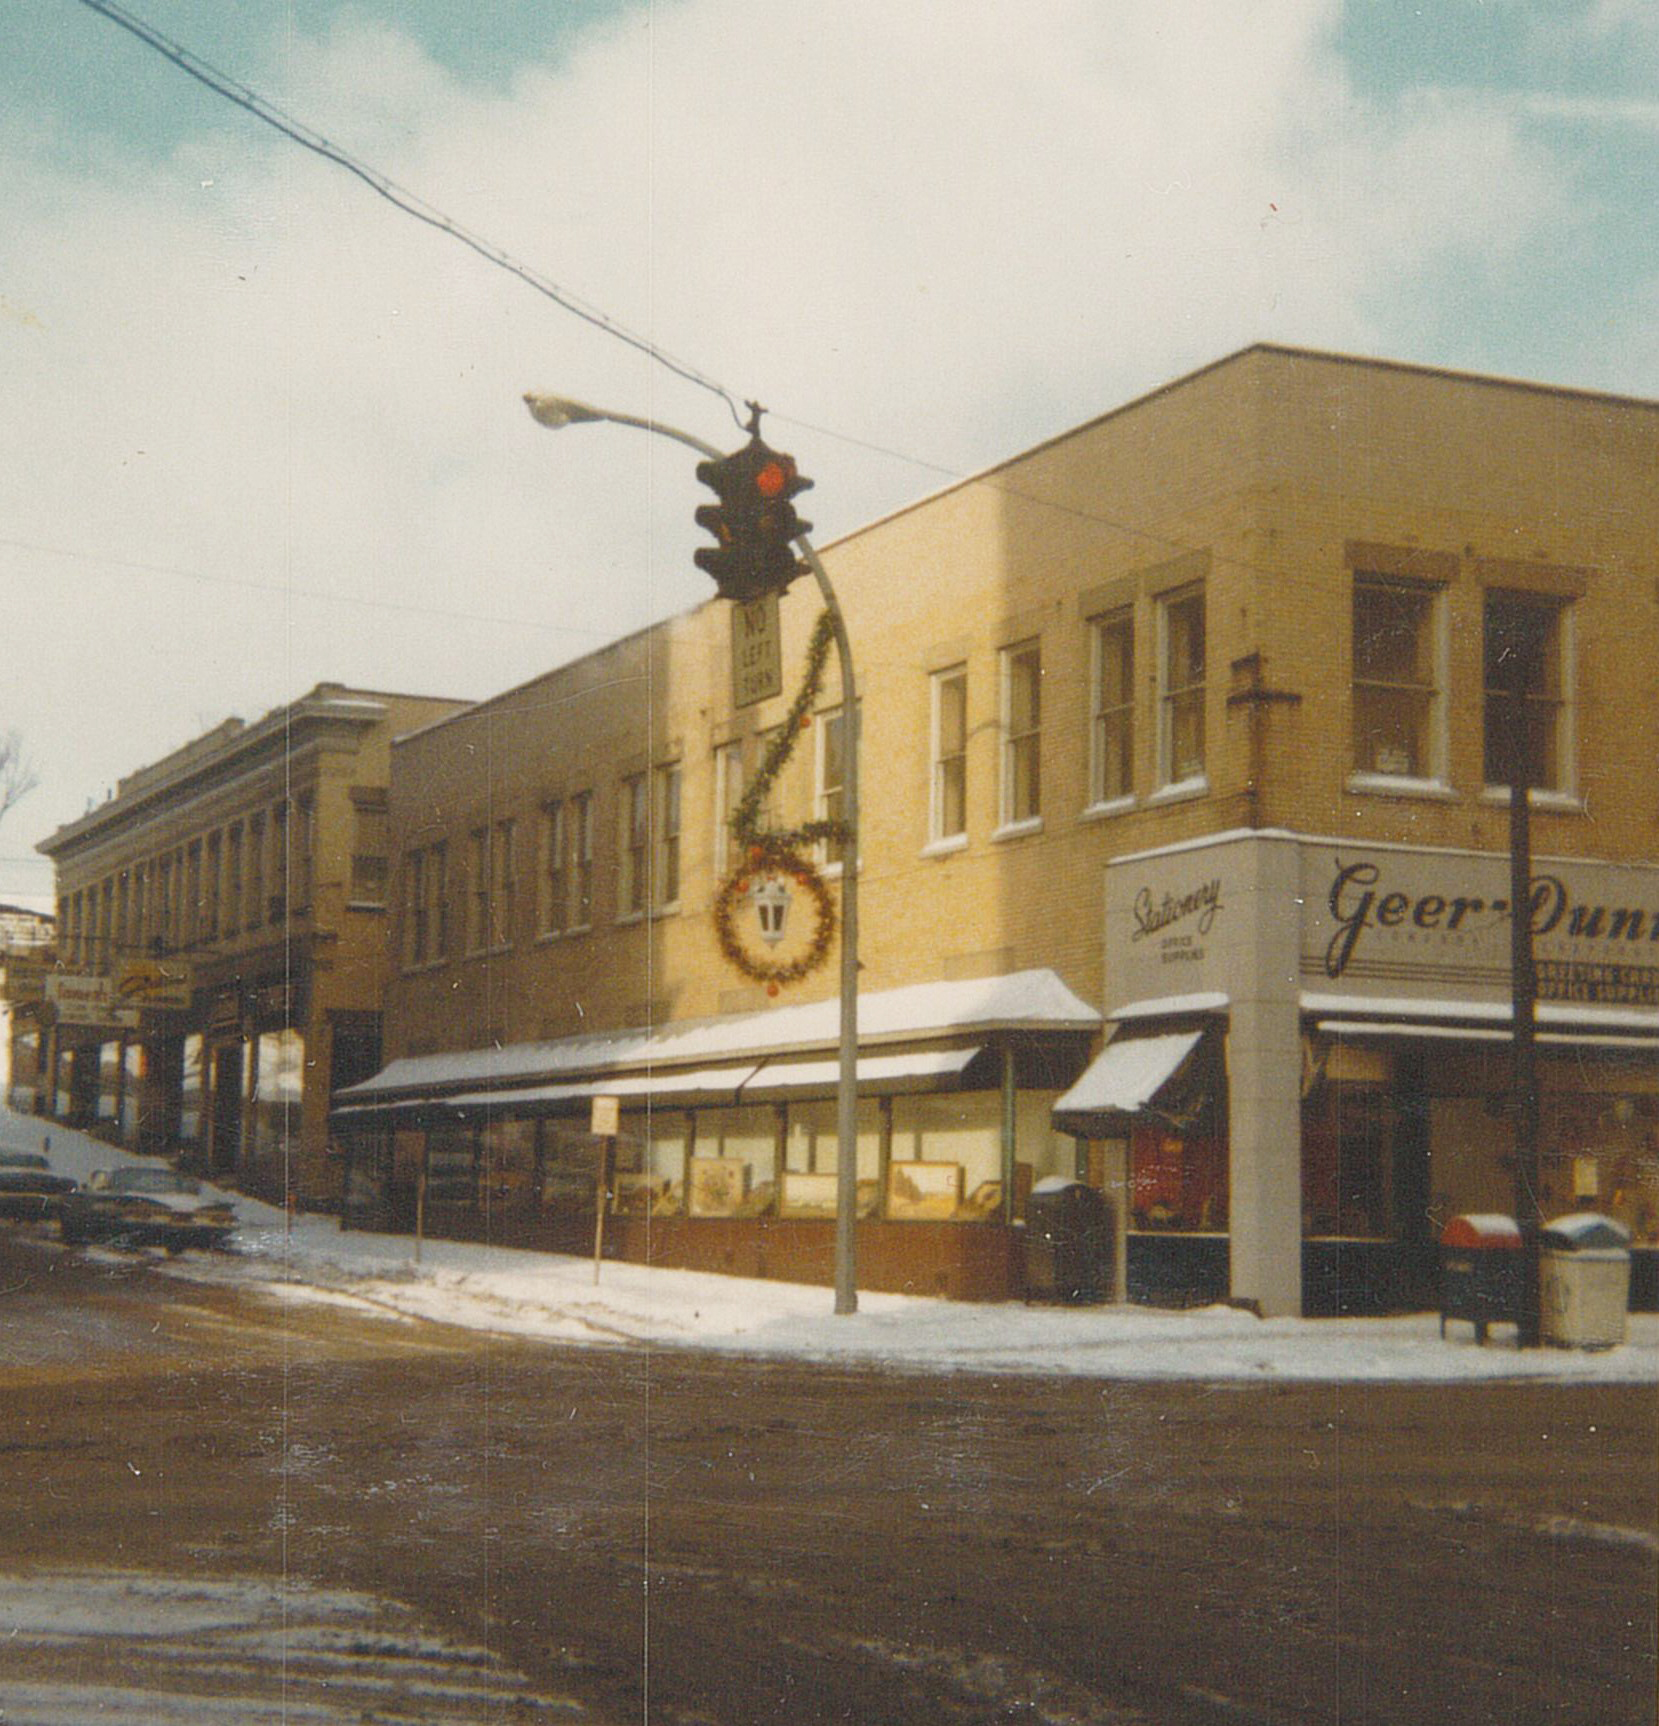 Geer-Dunn and Girton's Florist Shop are shown in this 1970 era picture taken at the corner of Cherry and Third Streets by Cornell Seaburg. From the Fenton History Center collections.